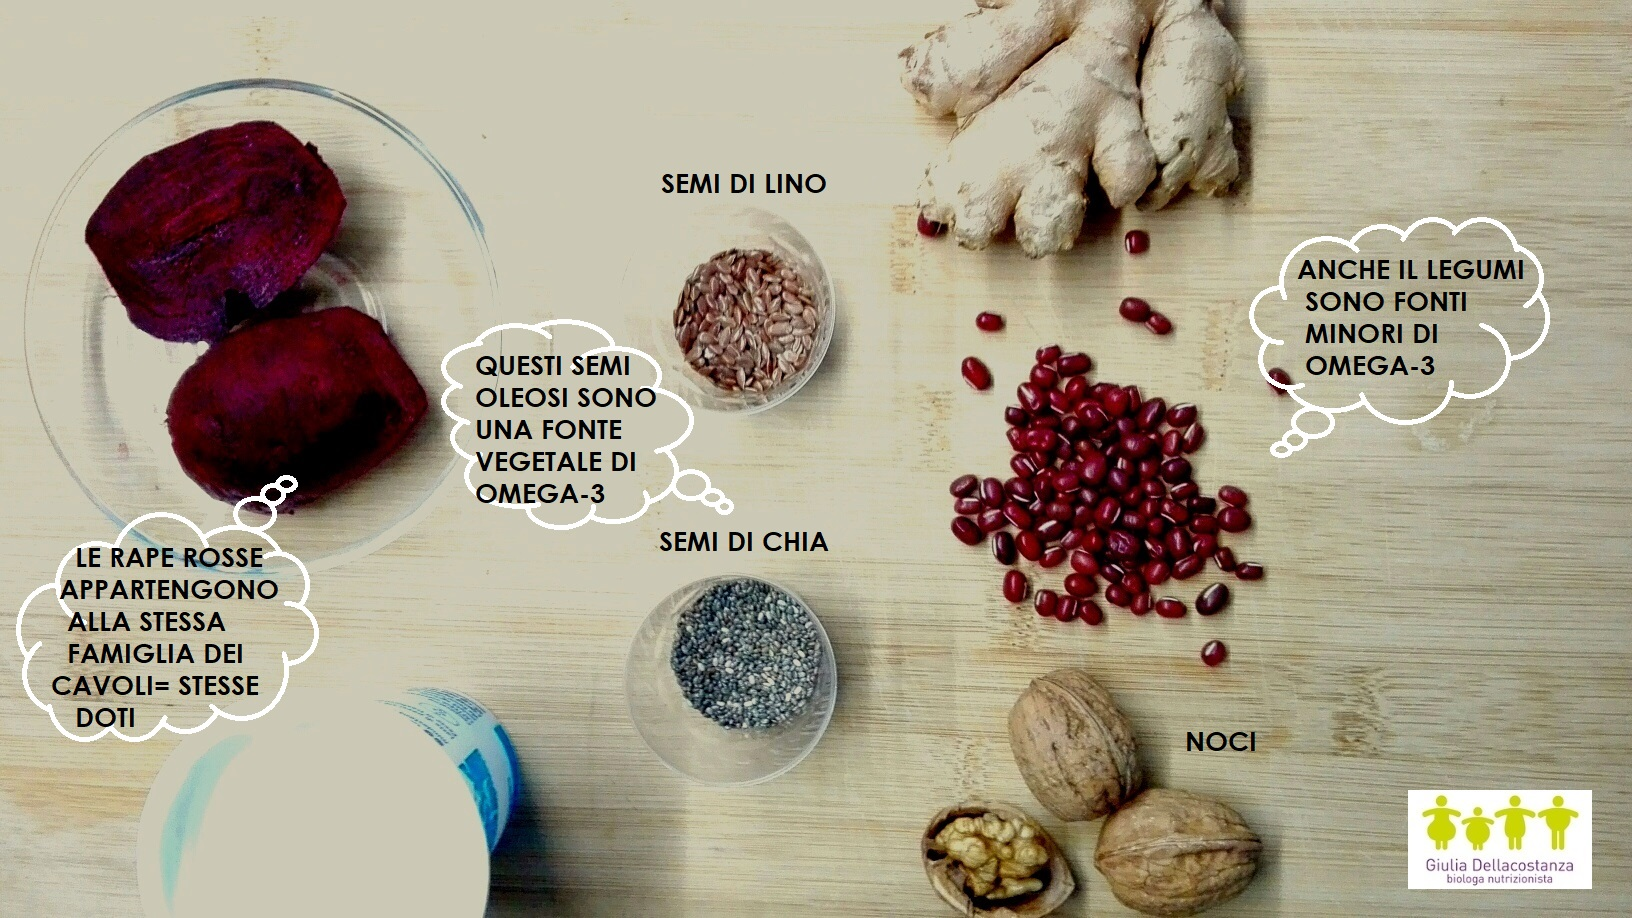 Tagliere ingredienti omega-3.